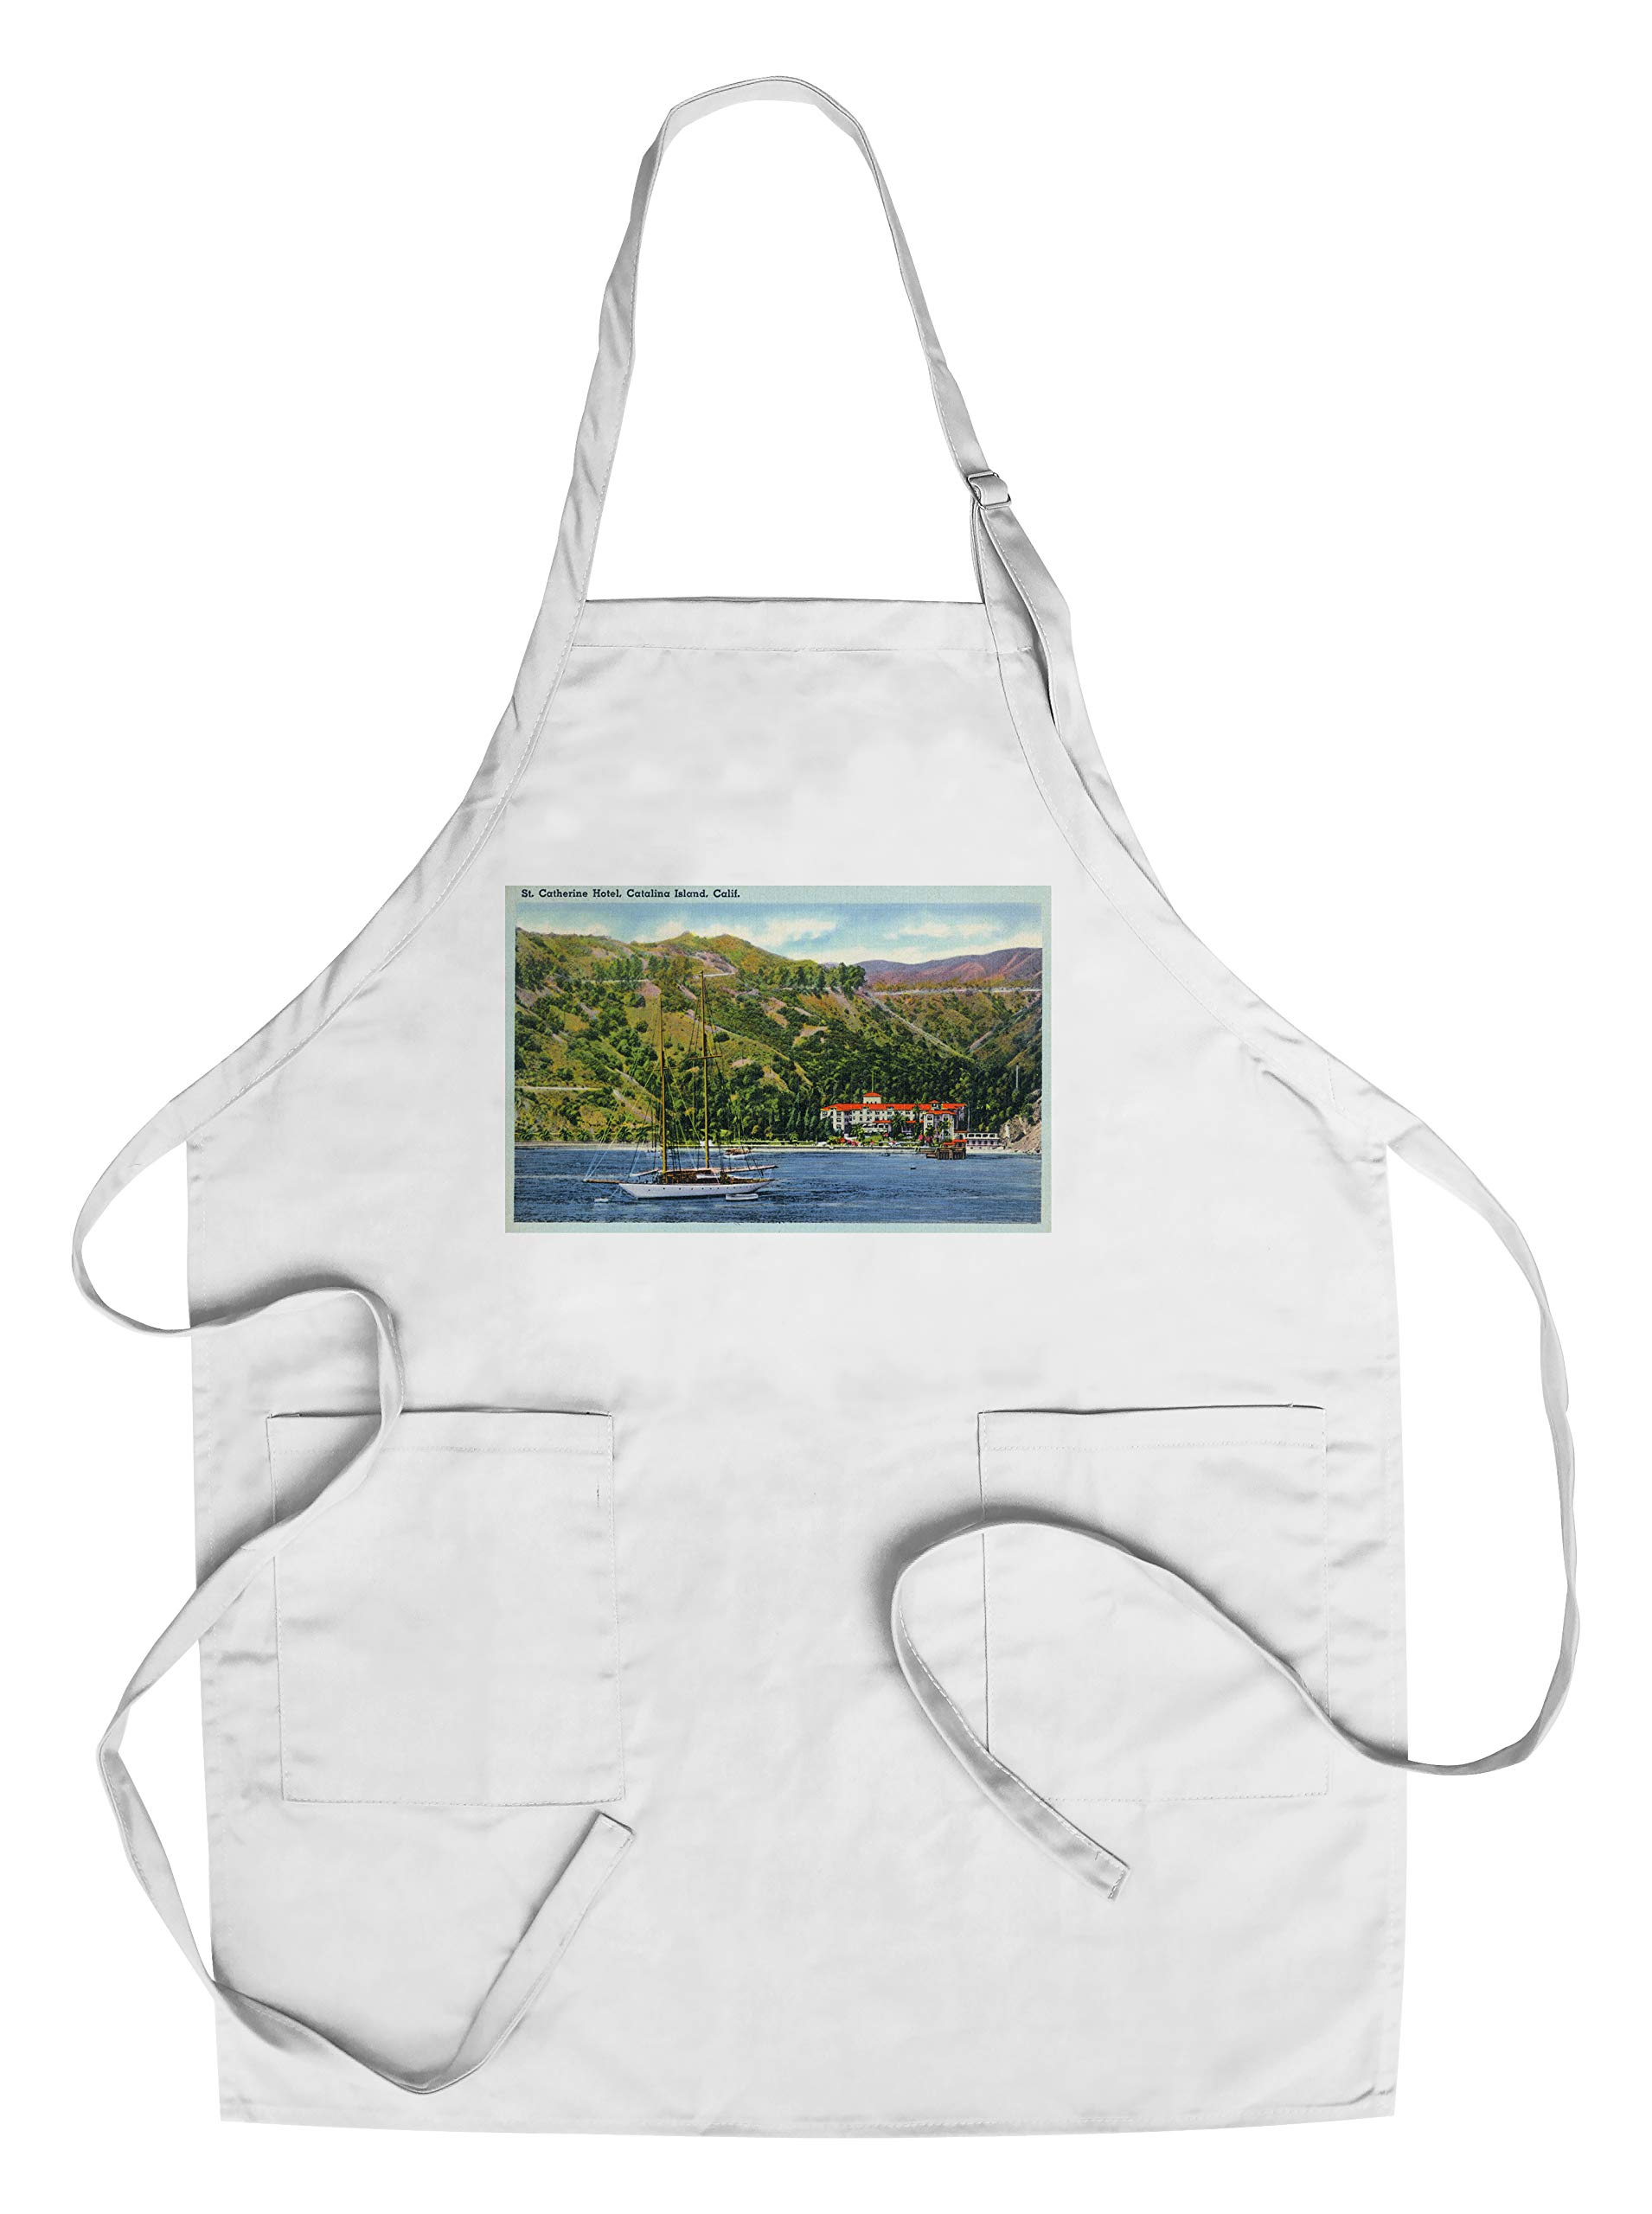 Santa Catalina Island, California - St. Catherine Hotel View from Water (Cotton/Polyester Chef's Apron)